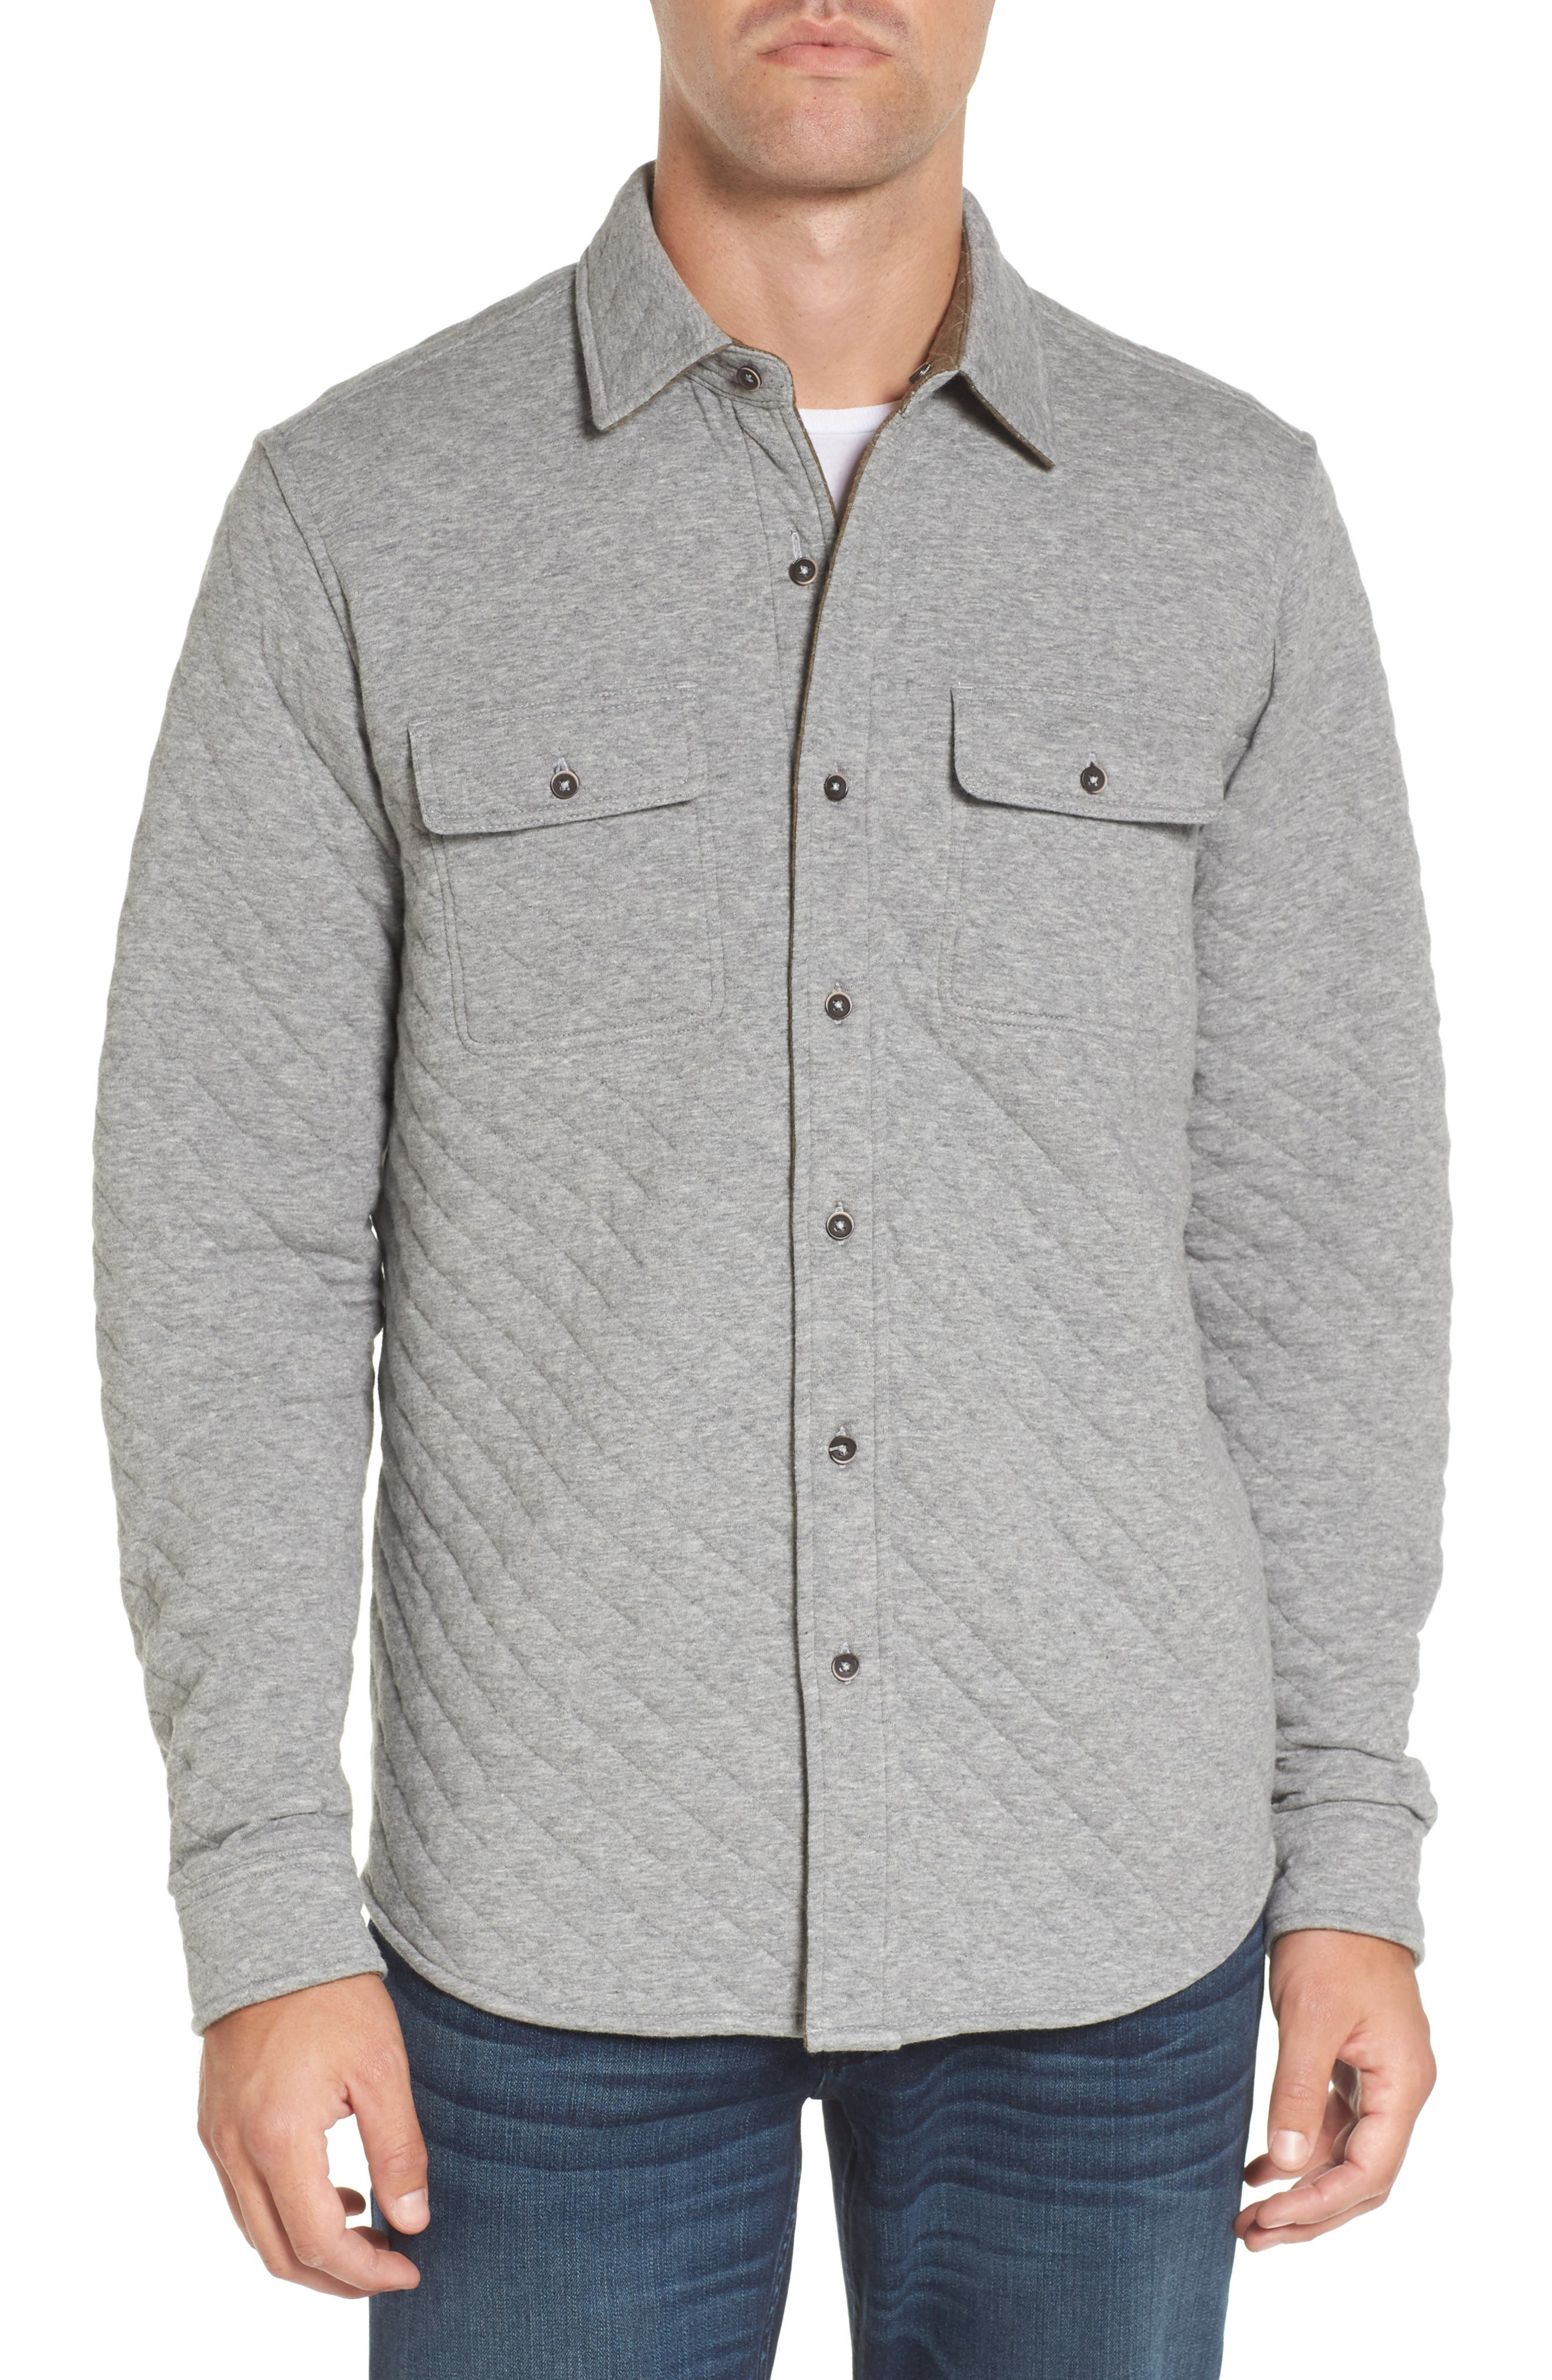 Reversible Double-Face Quilted Shirt,                         Main,                         color, Med Grey Htr/ Army Htr Quilted